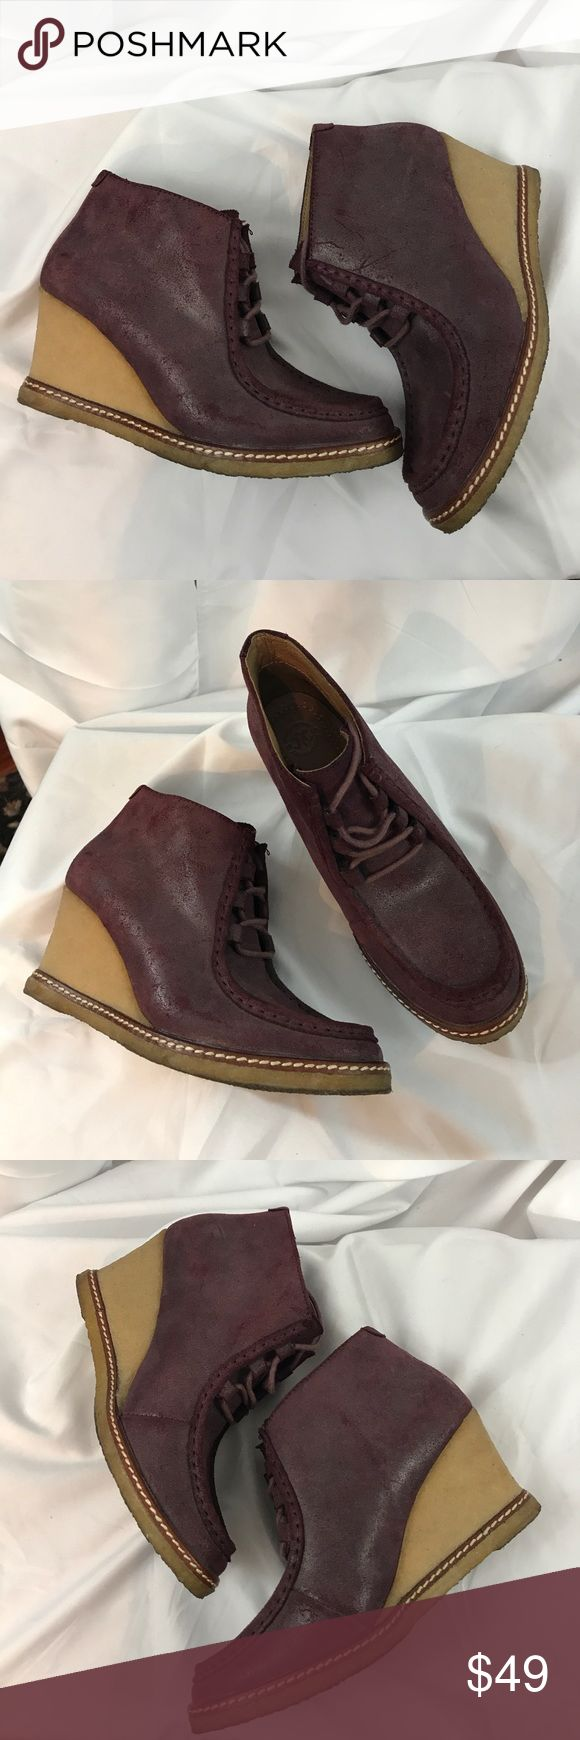 Johnston & Murphy sz6 wine color wedge chukka boot Excellent used condition Johnston & Murphy sz6 wine color wedge chukka boots...leather has a Distressed worn look...these have been worn only twice...inside right unsold has residue of original retail label-it is not sticky but it is there-see pict... Johnston & Murphy Shoes Ankle Boots & Booties